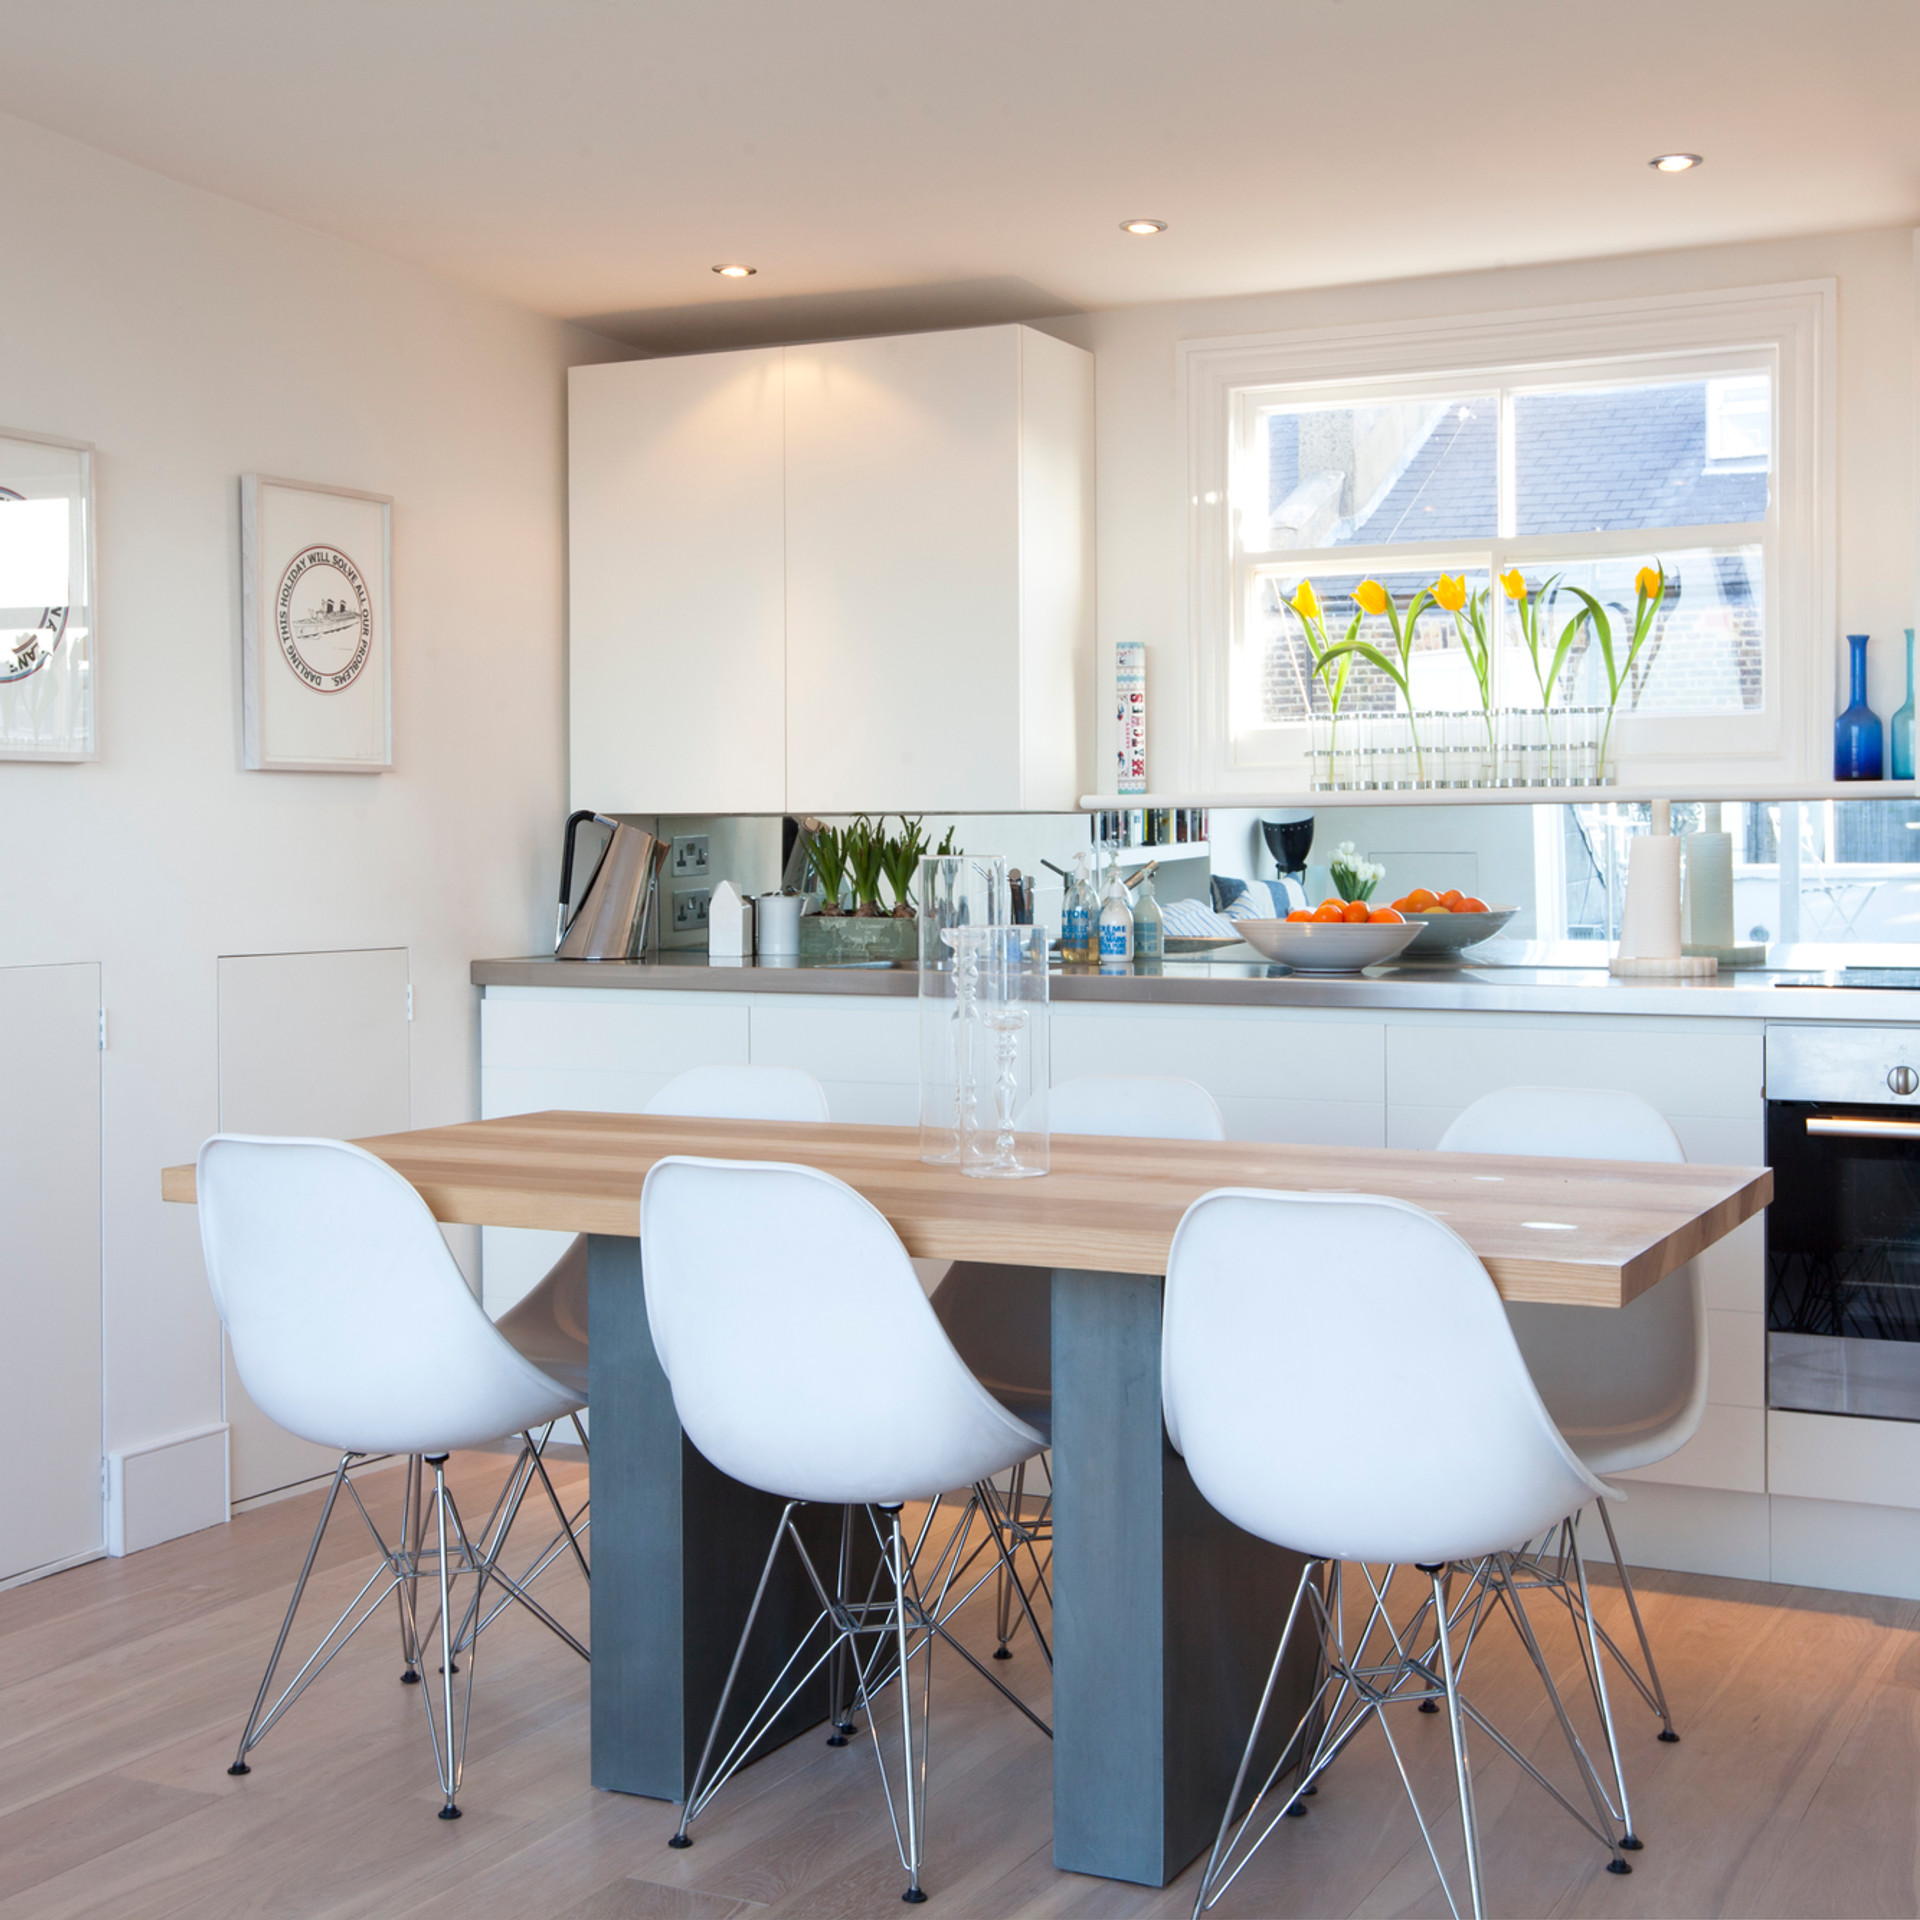 White kitchen and dining room table.jpg